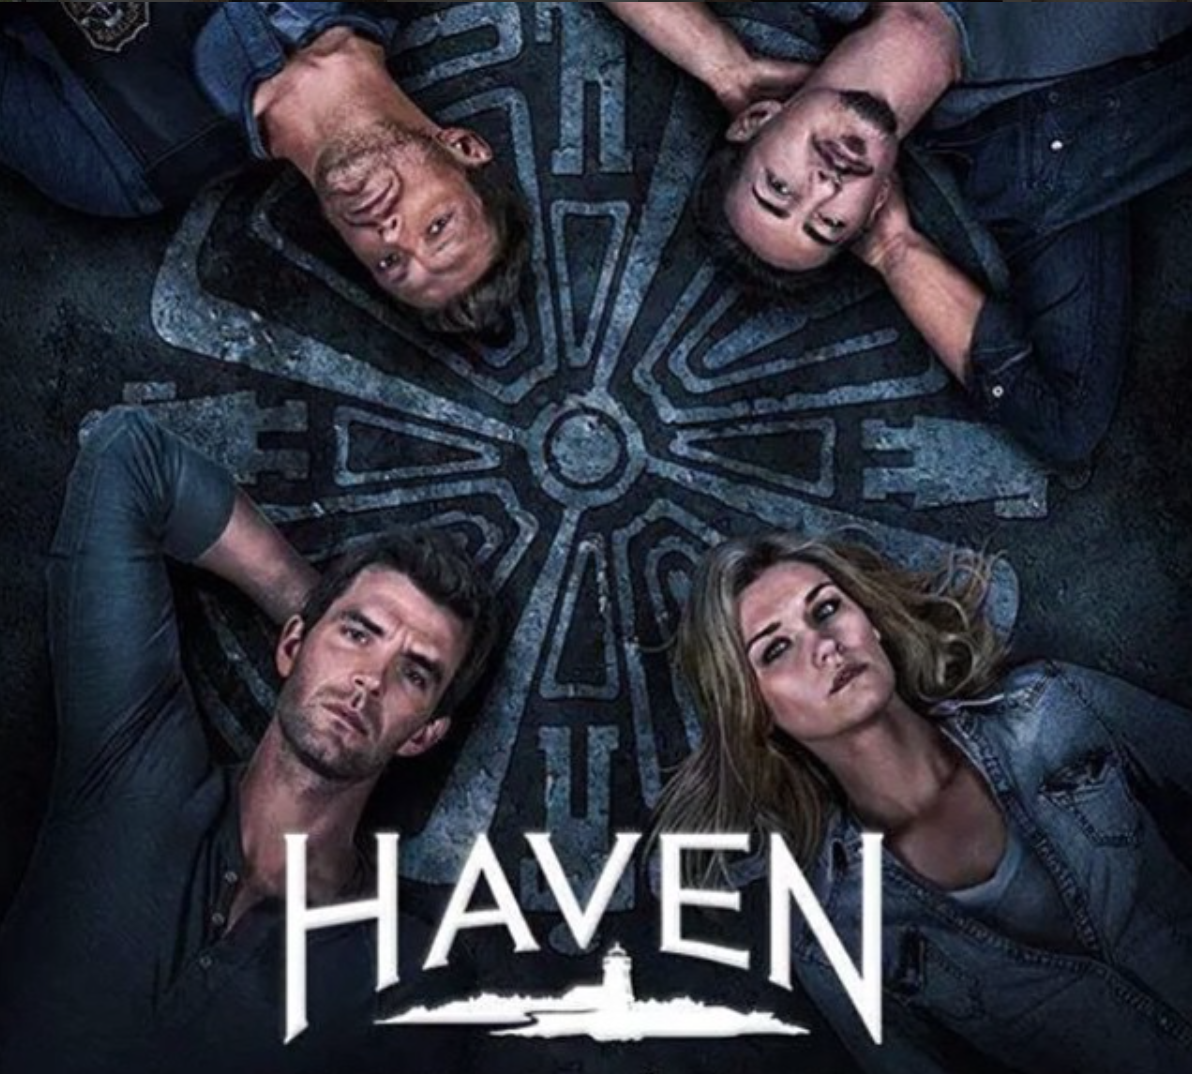 WOW #haven5B snuck up on me! It's here! Show your love by TUNING IN to @SyfyTV 10pm/ EST a two hour #haven premiere! http://t.co/fnuqsKu3M1